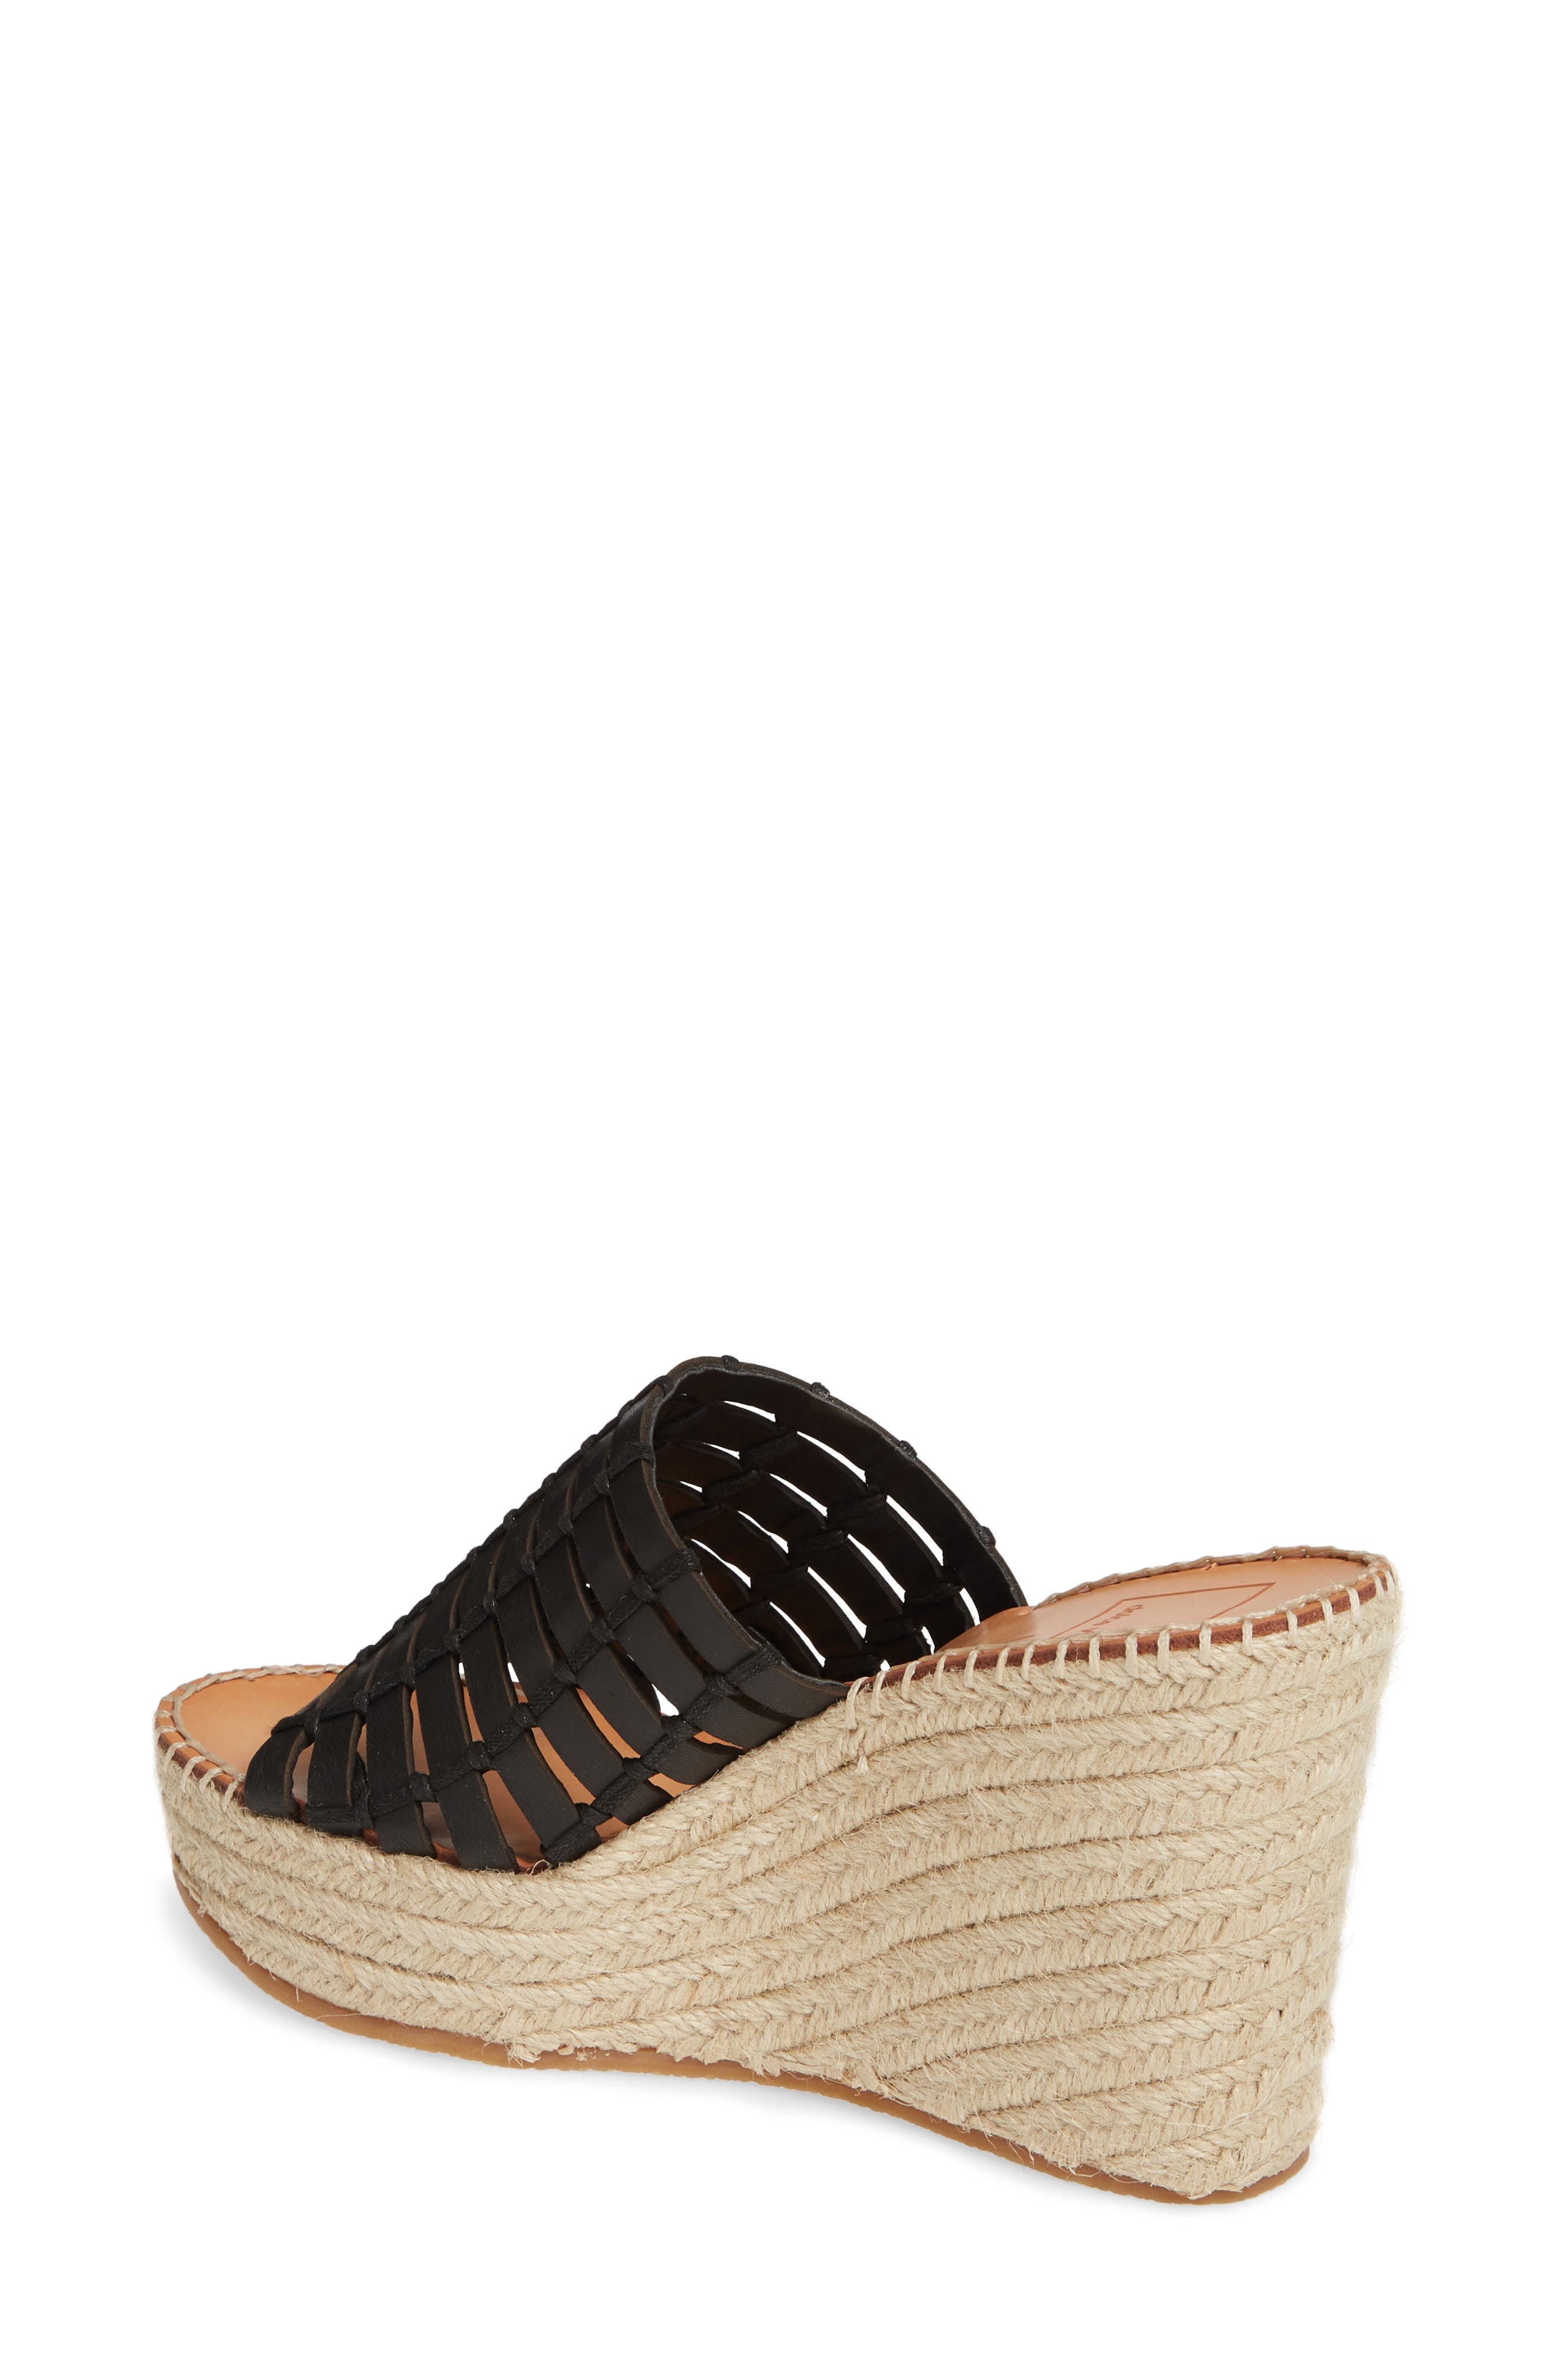 DOLCE VITA, Prue Espadrille Wedge Slide Sandal, Alternate thumbnail 2, color, BLACK LEATHER